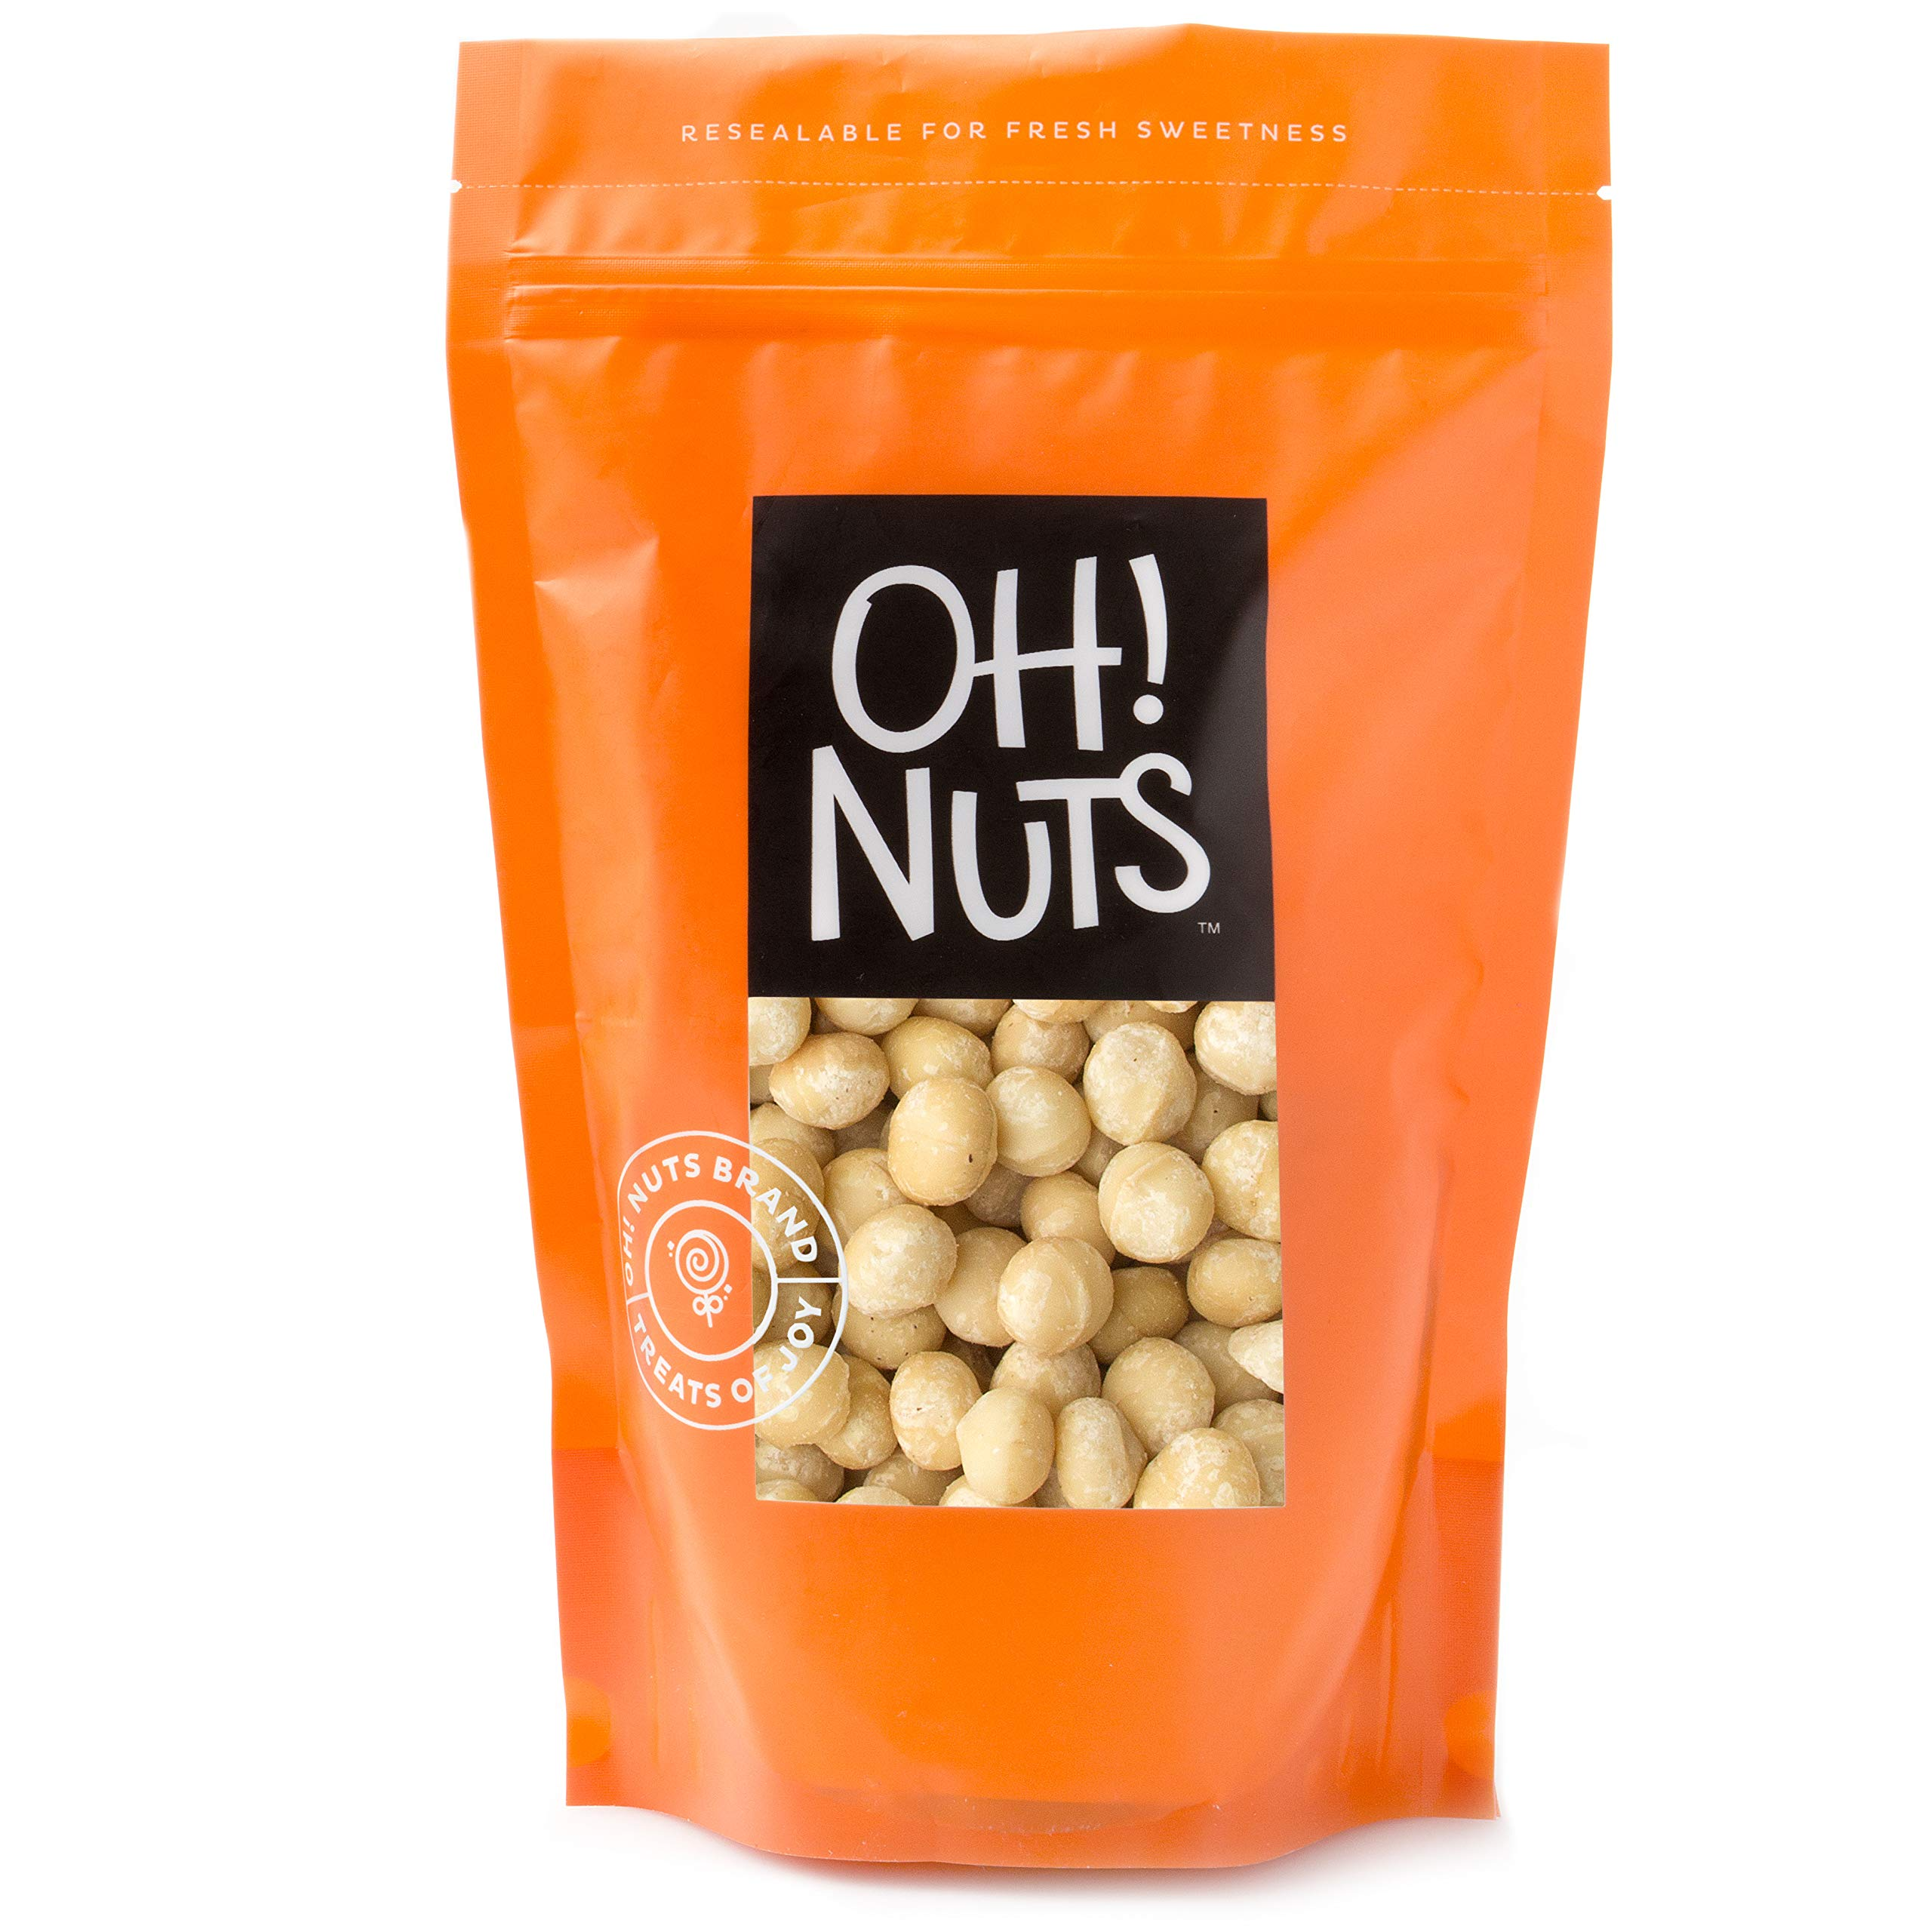 Macadamia Nuts Raw Unsalted - Large Hawaiian Raw Macadamias, Heart Healthy Snack 1 LB BAG - Oh! Nuts by oh! Nuts (Image #1)